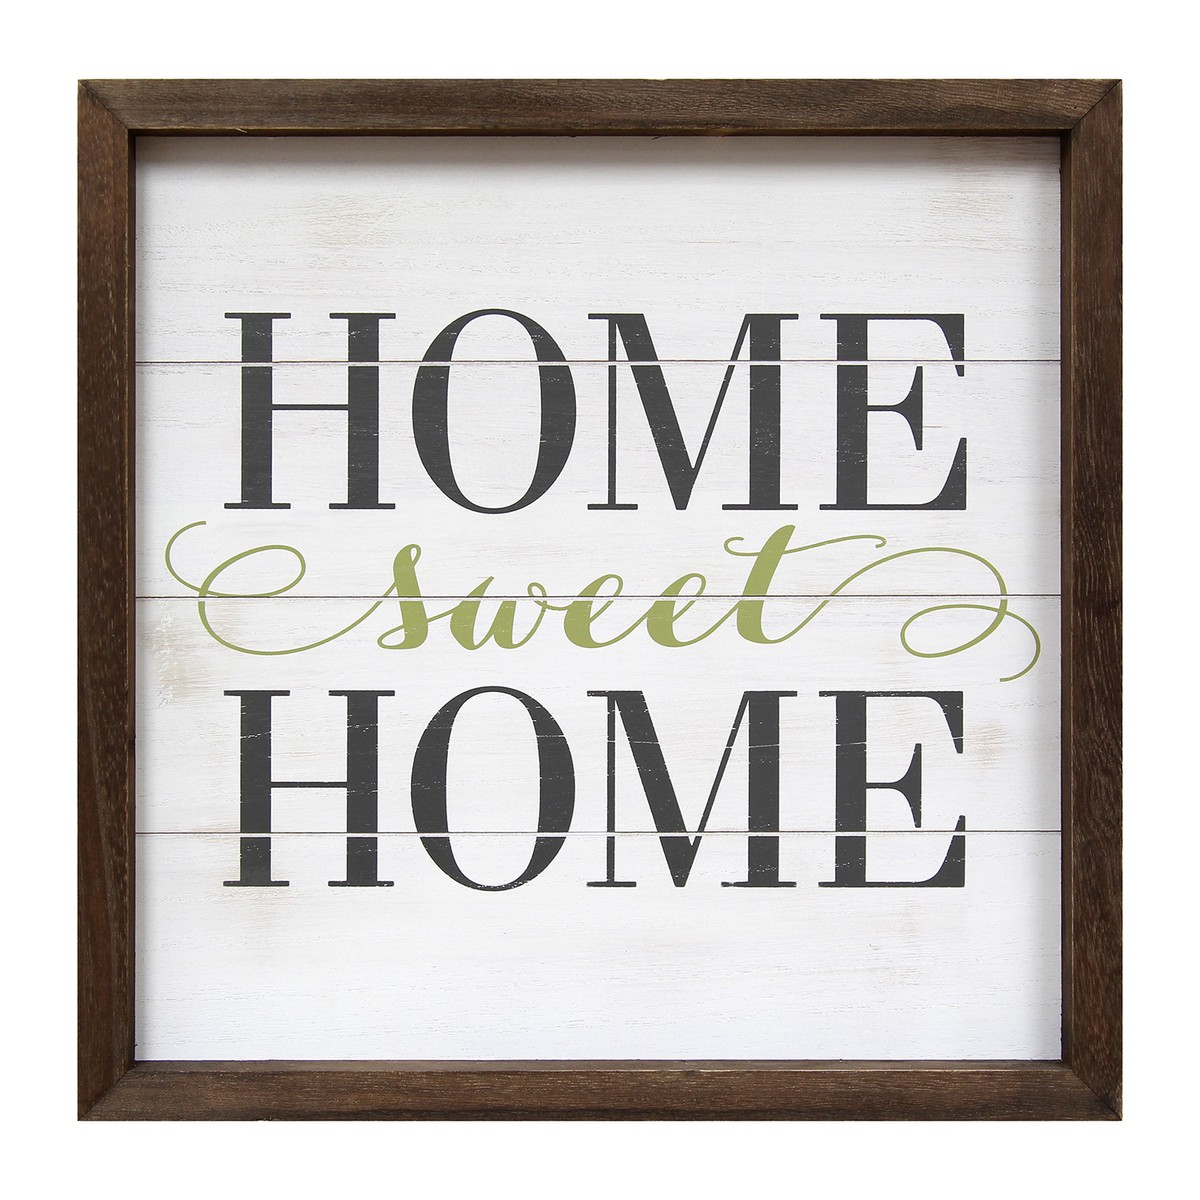 Stratton home decor home sweet home wall art multi Home sweet home wall decor